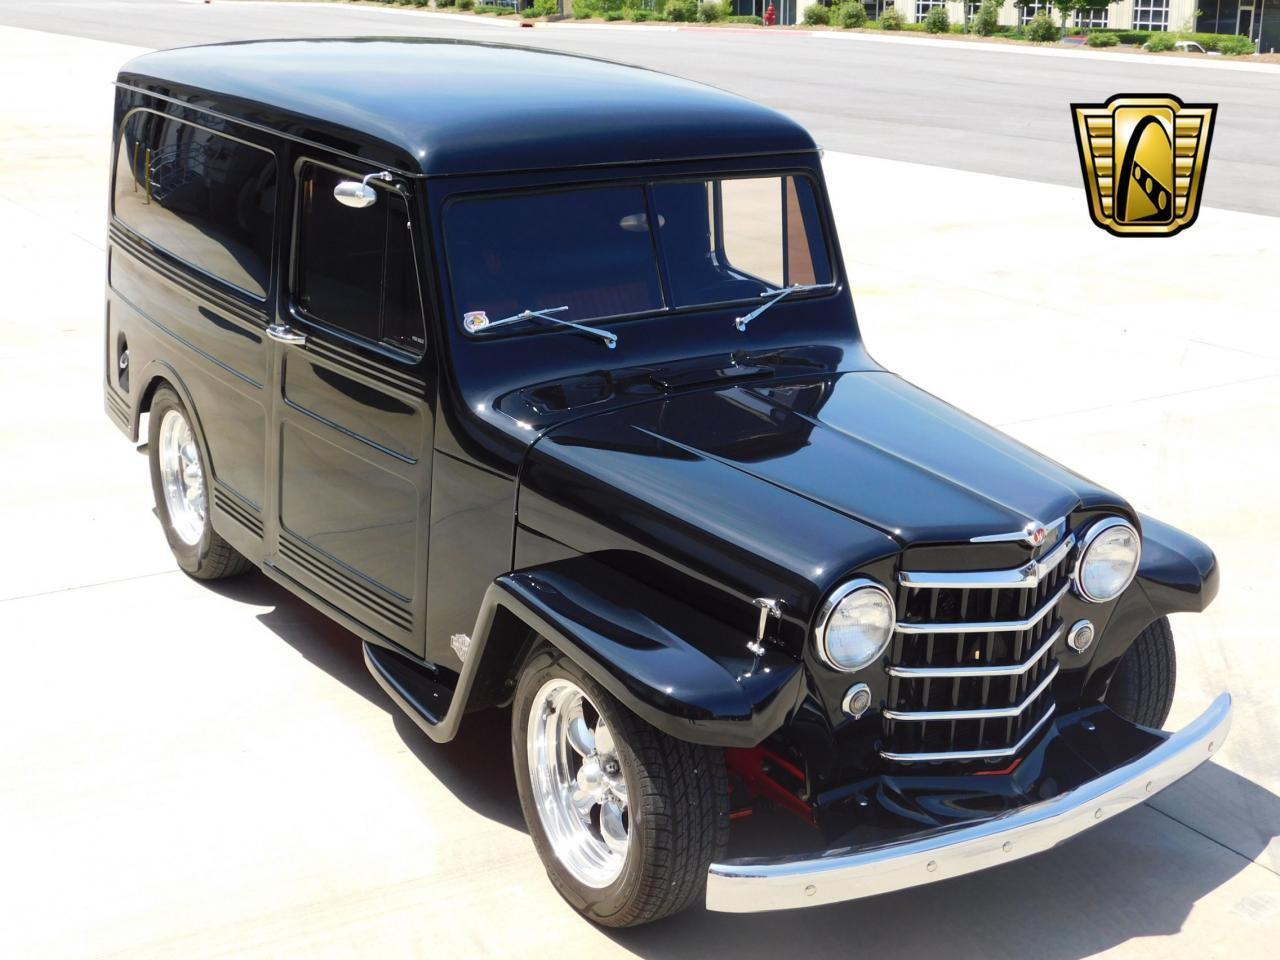 Large Picture of '52 Willys Sedan located in Georgia - $58,000.00 Offered by Gateway Classic Cars - Atlanta - L8EZ